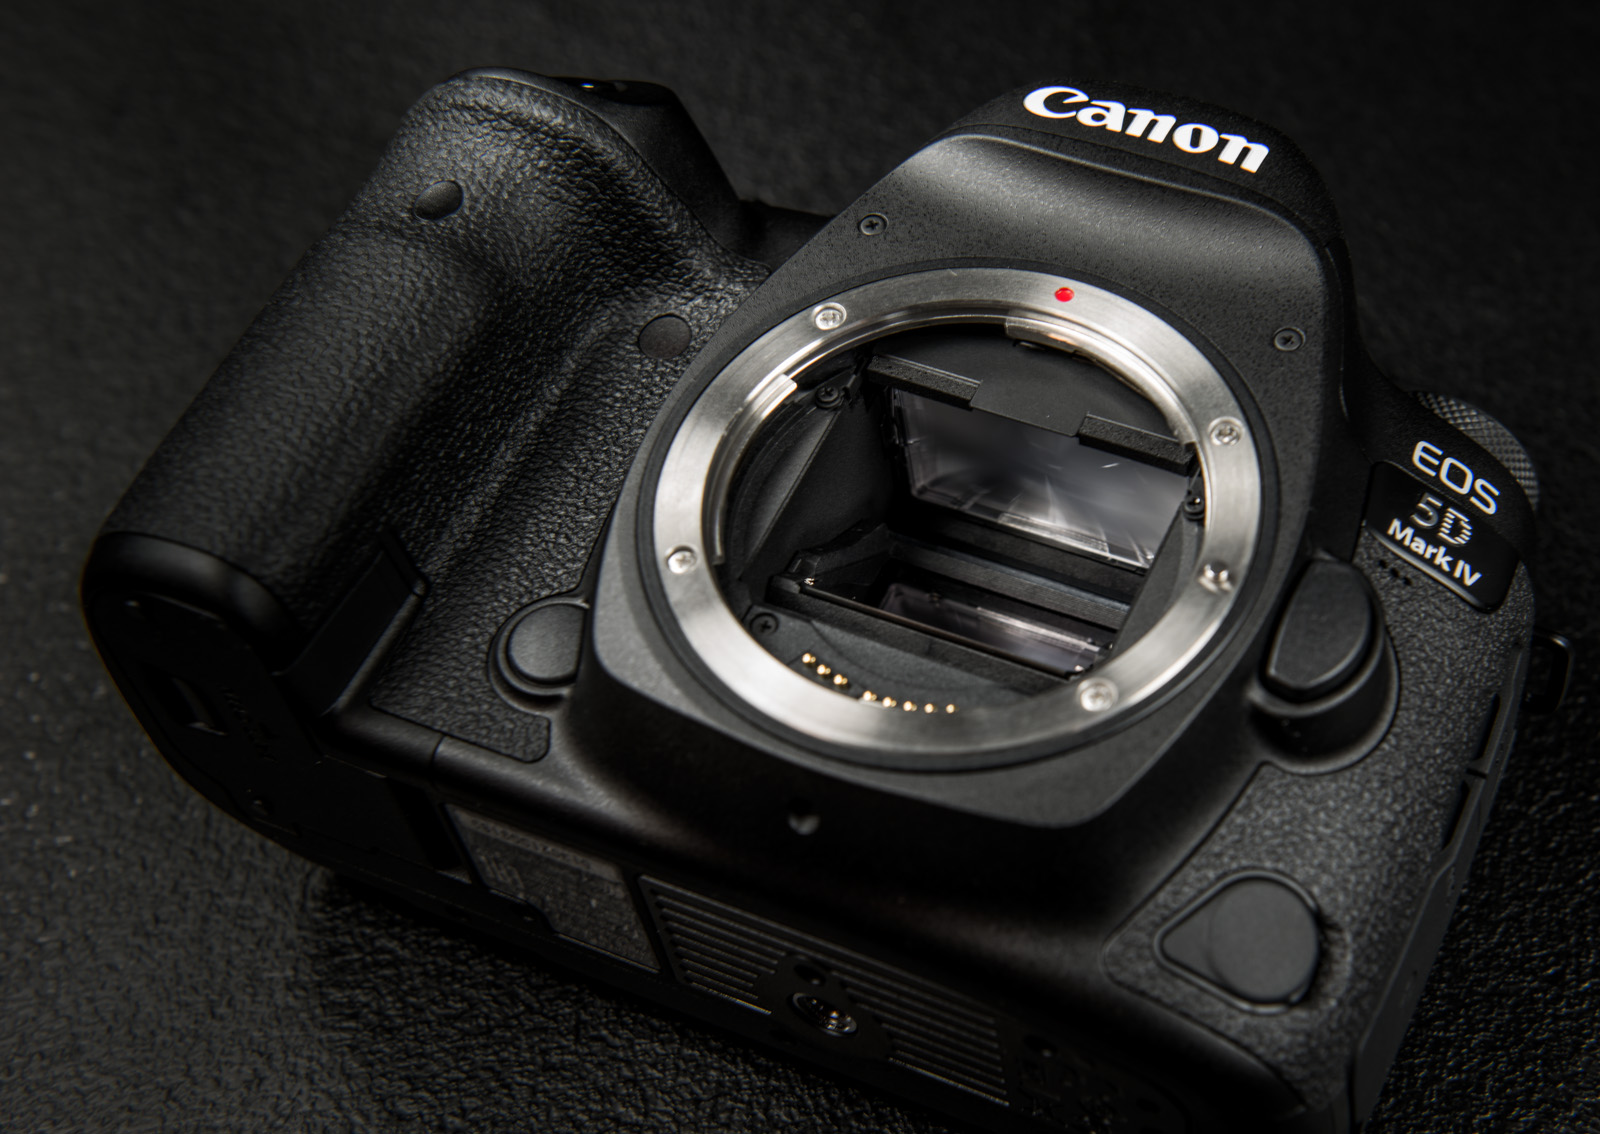 ads_5330-canon-eos-5d-mark-iv-kere